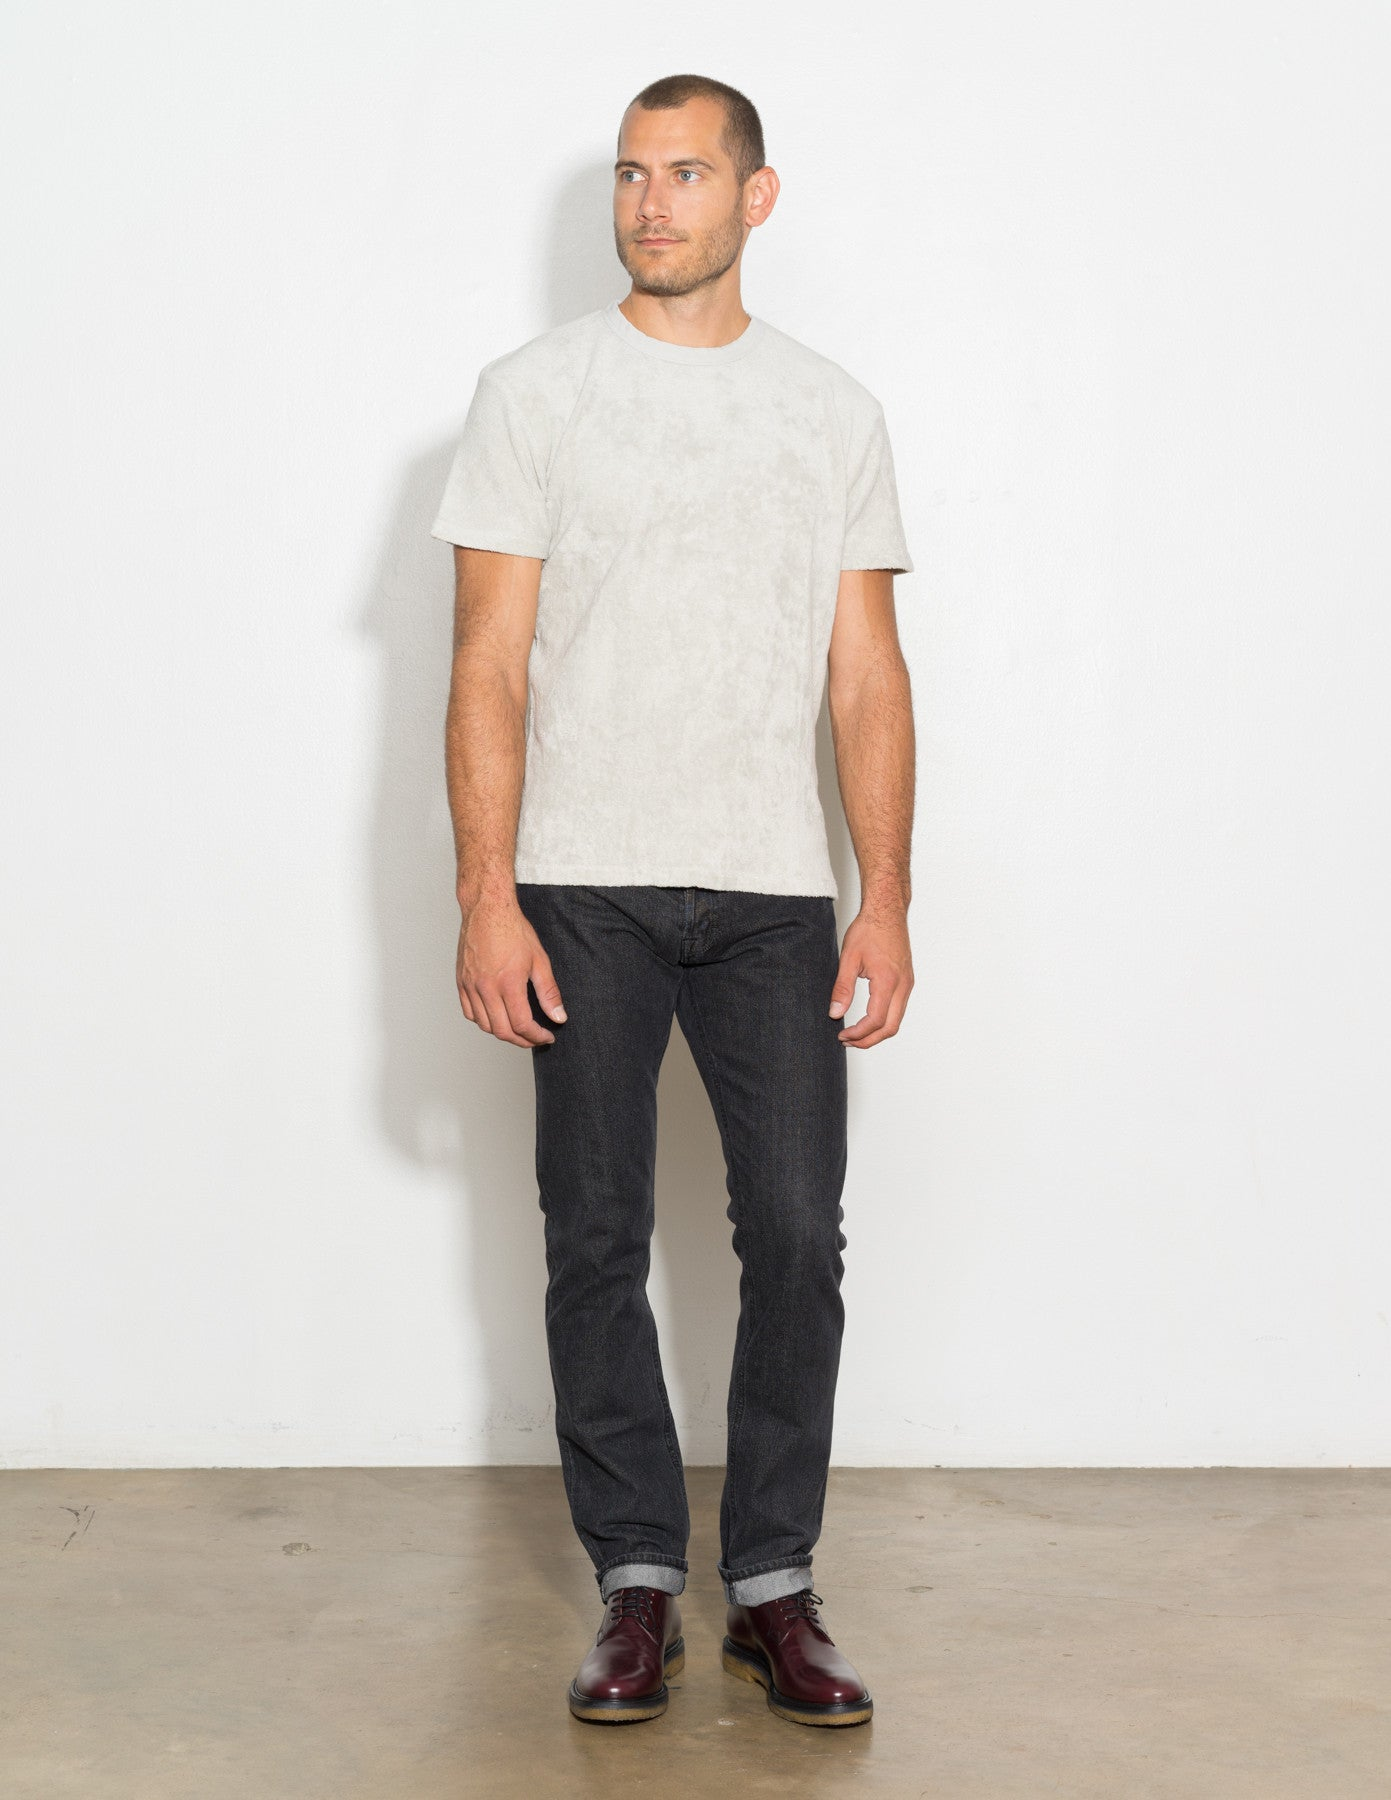 Terry Cloth Perfect Tee